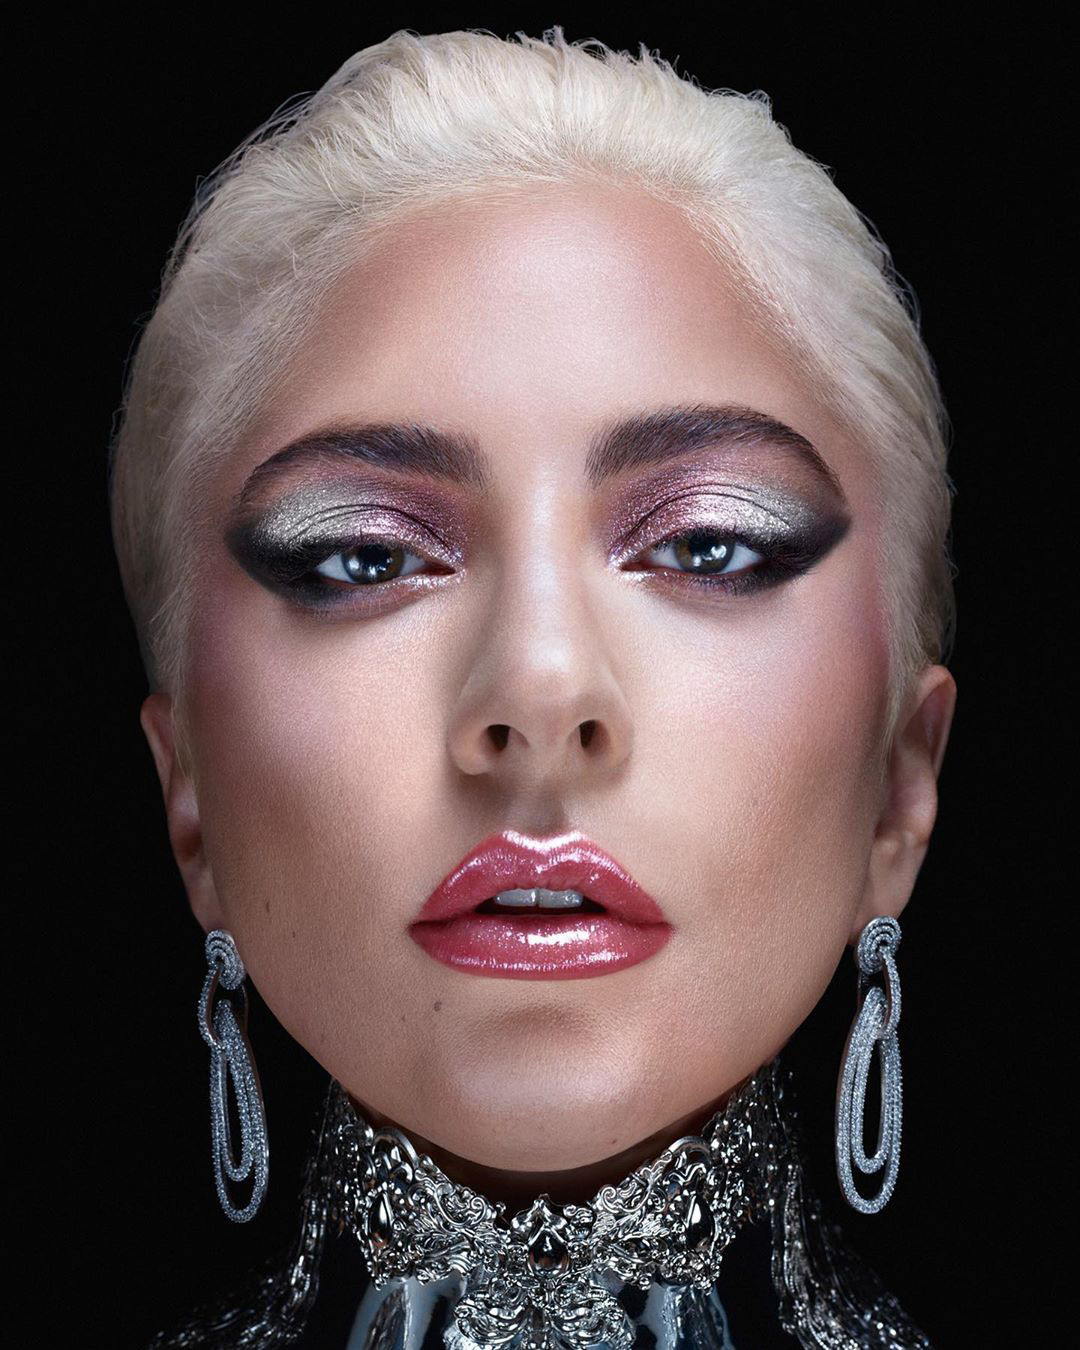 Lady Gaga's Beauty Brand Is Coming Sooner Than You Think